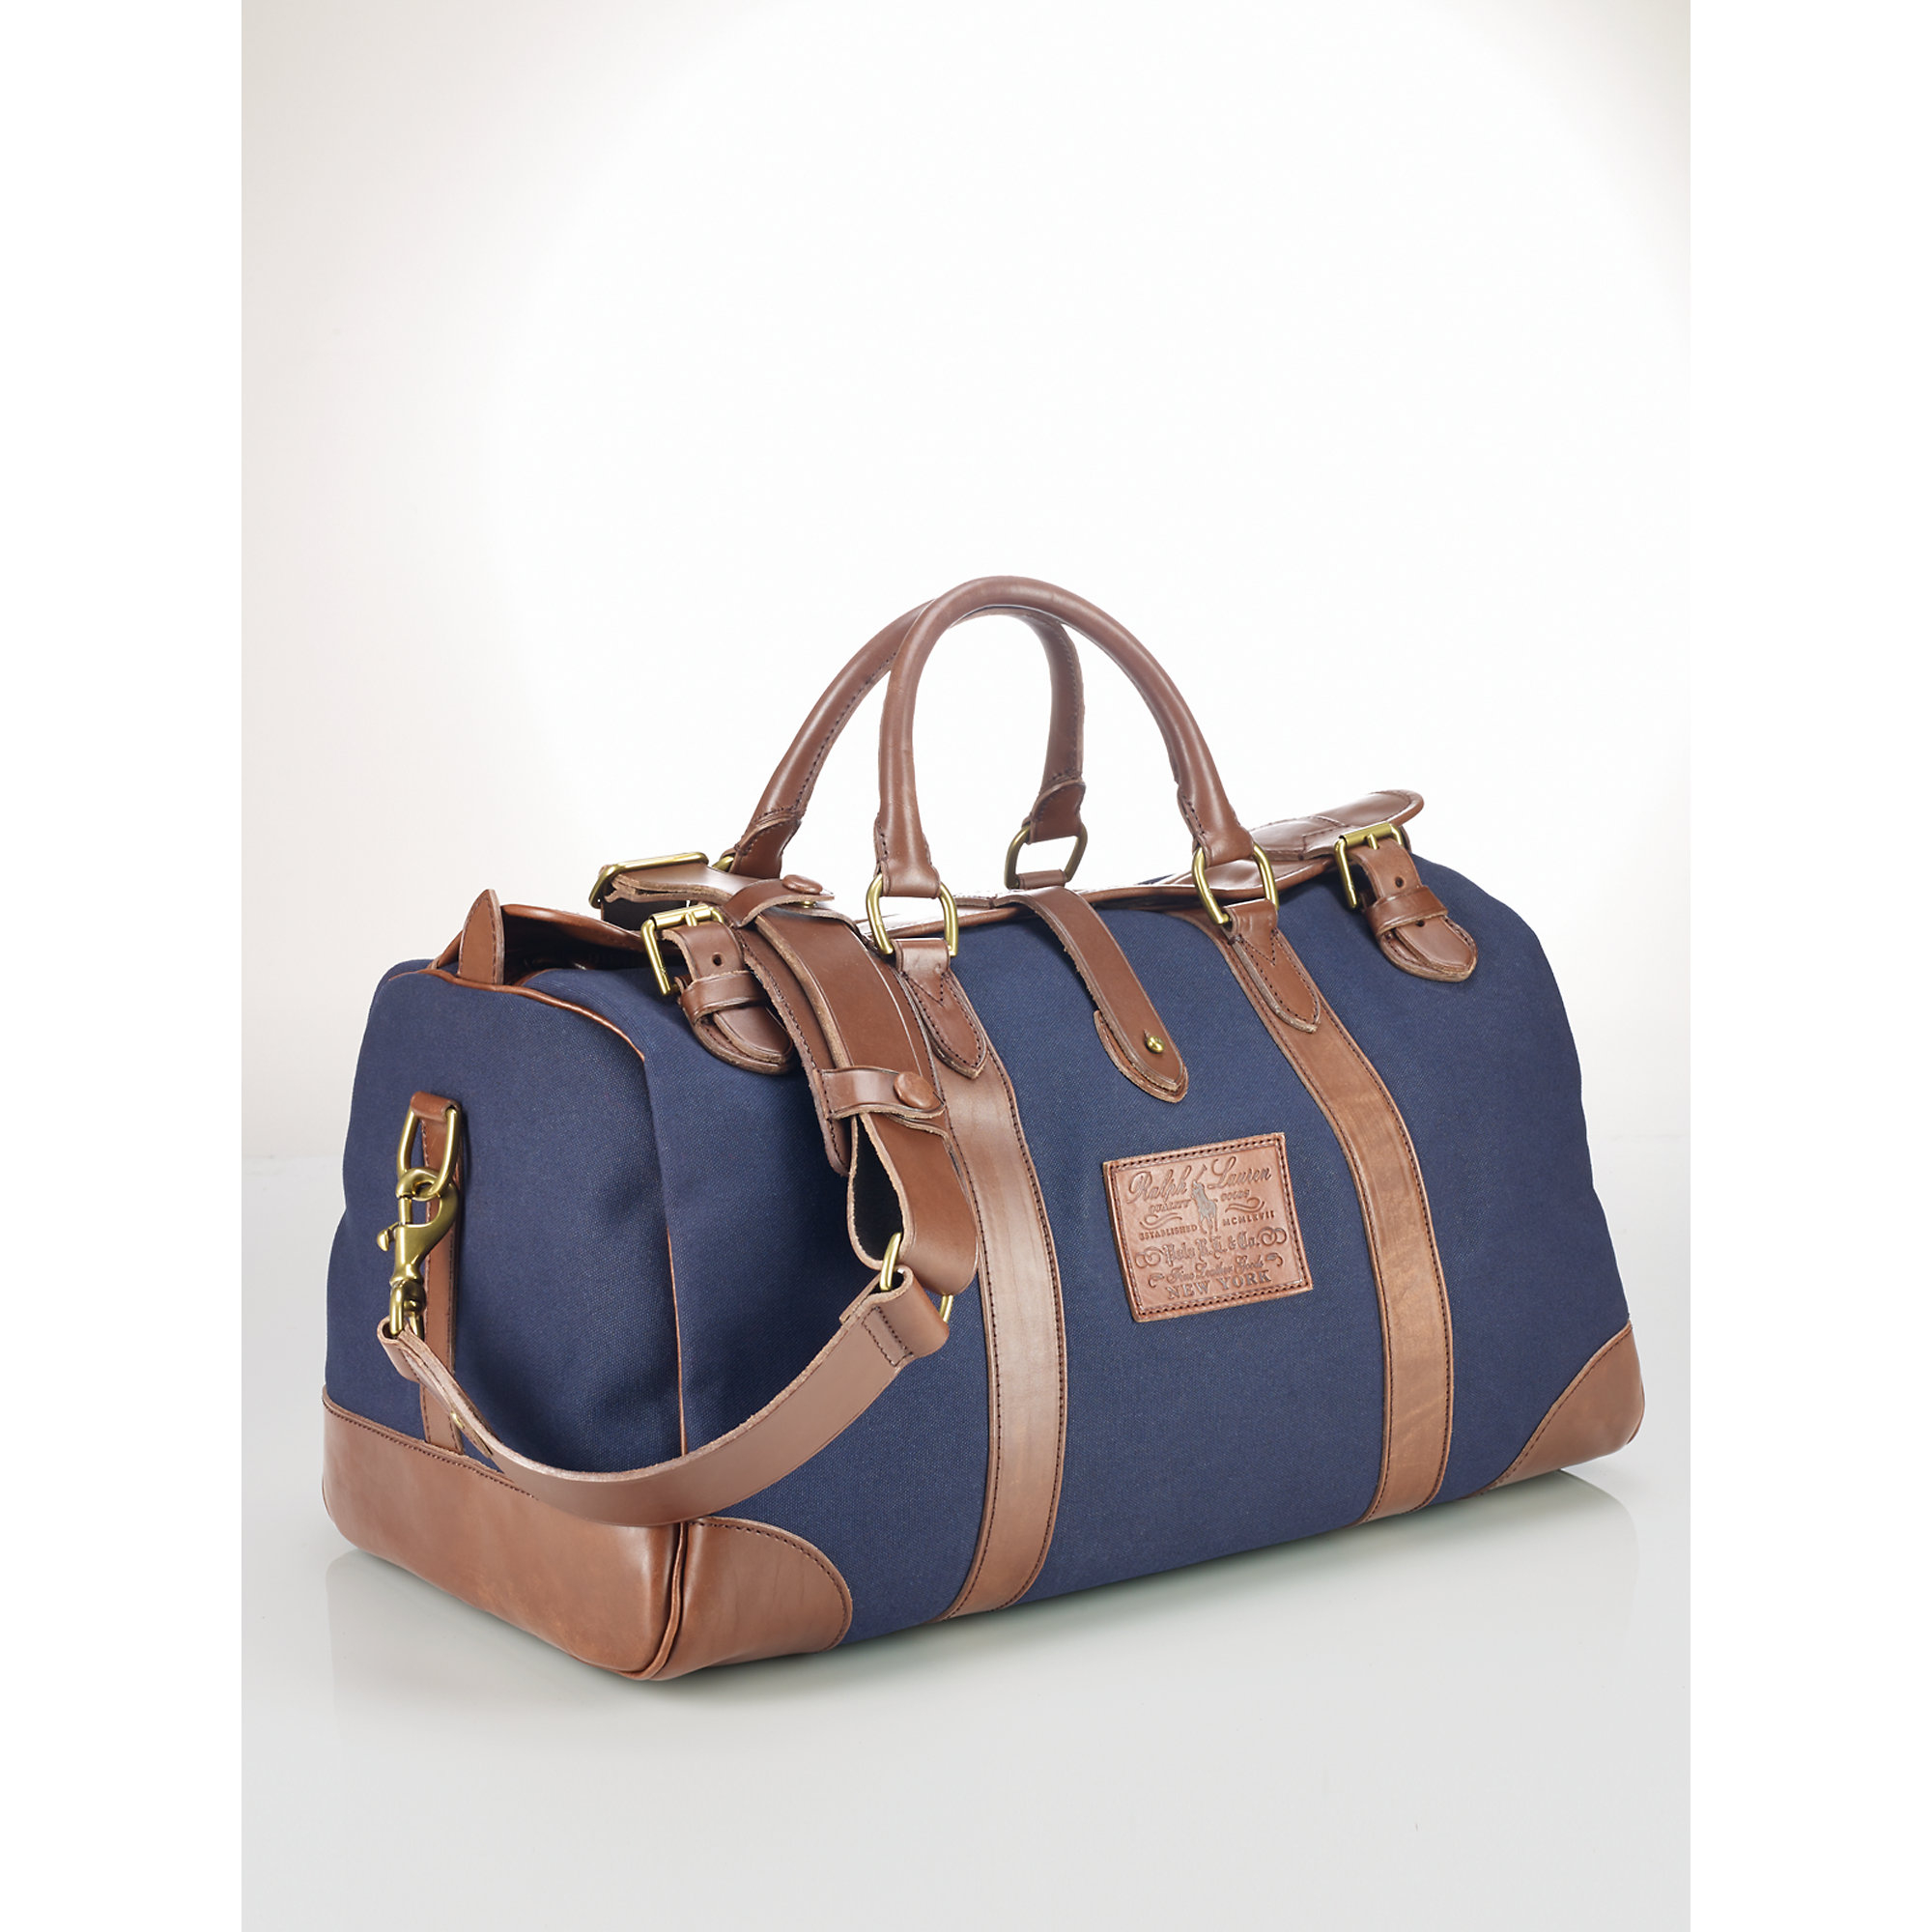 bf7542cfe7 Lyst - Polo Ralph Lauren Leather-trim Canvas Gym Bag in Blue for Men